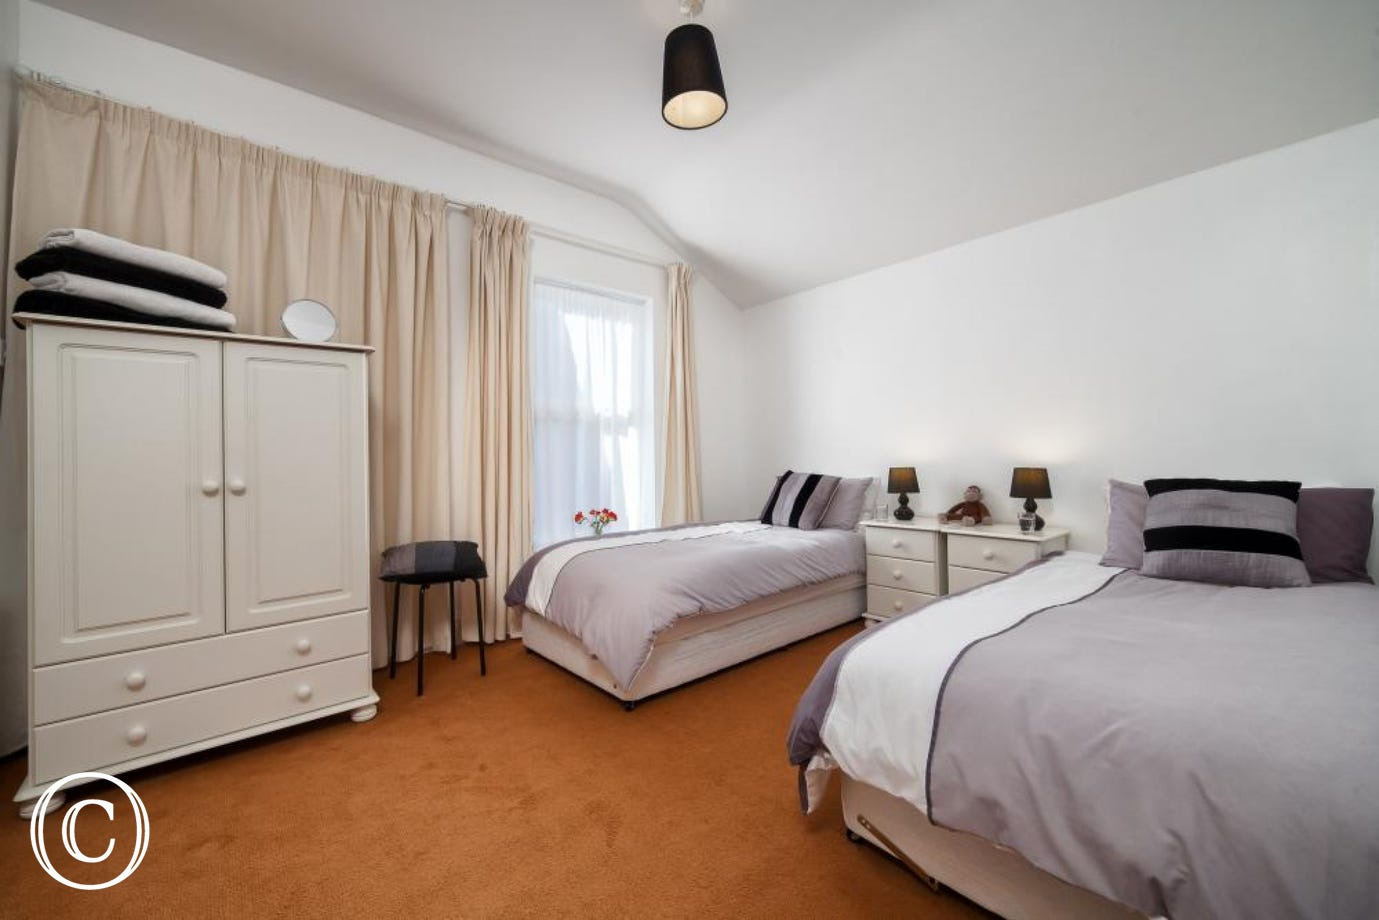 Twin Bedroom, Perfect for Family Seaside Breaks in Torquay, Paignton, Torbay and Devon